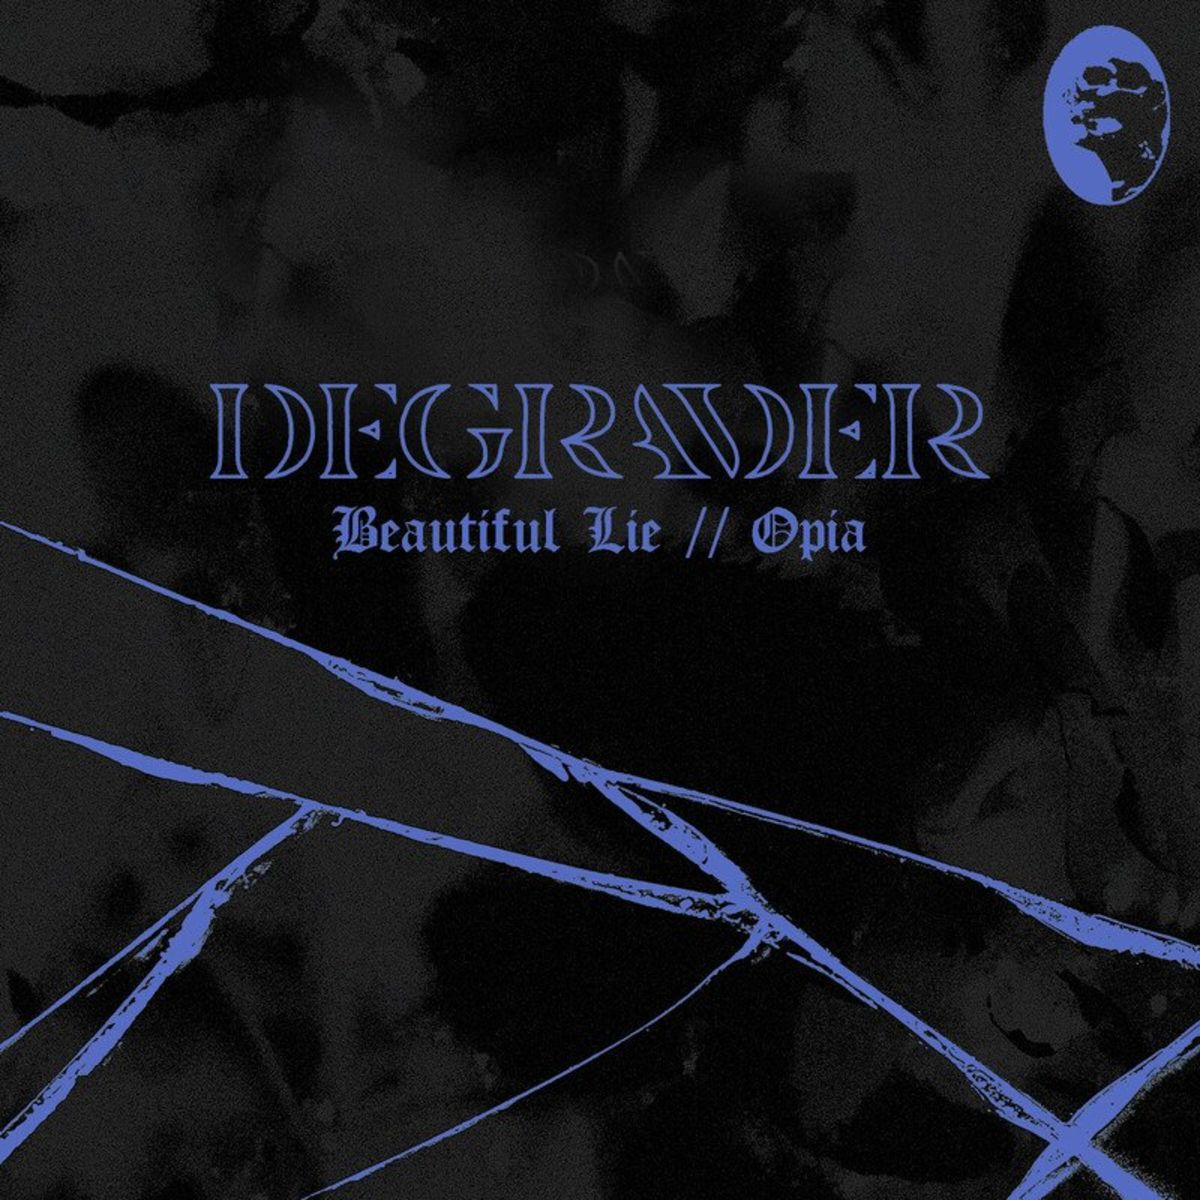 Degrader - Beautiful Lie // Opia [single] (2021)